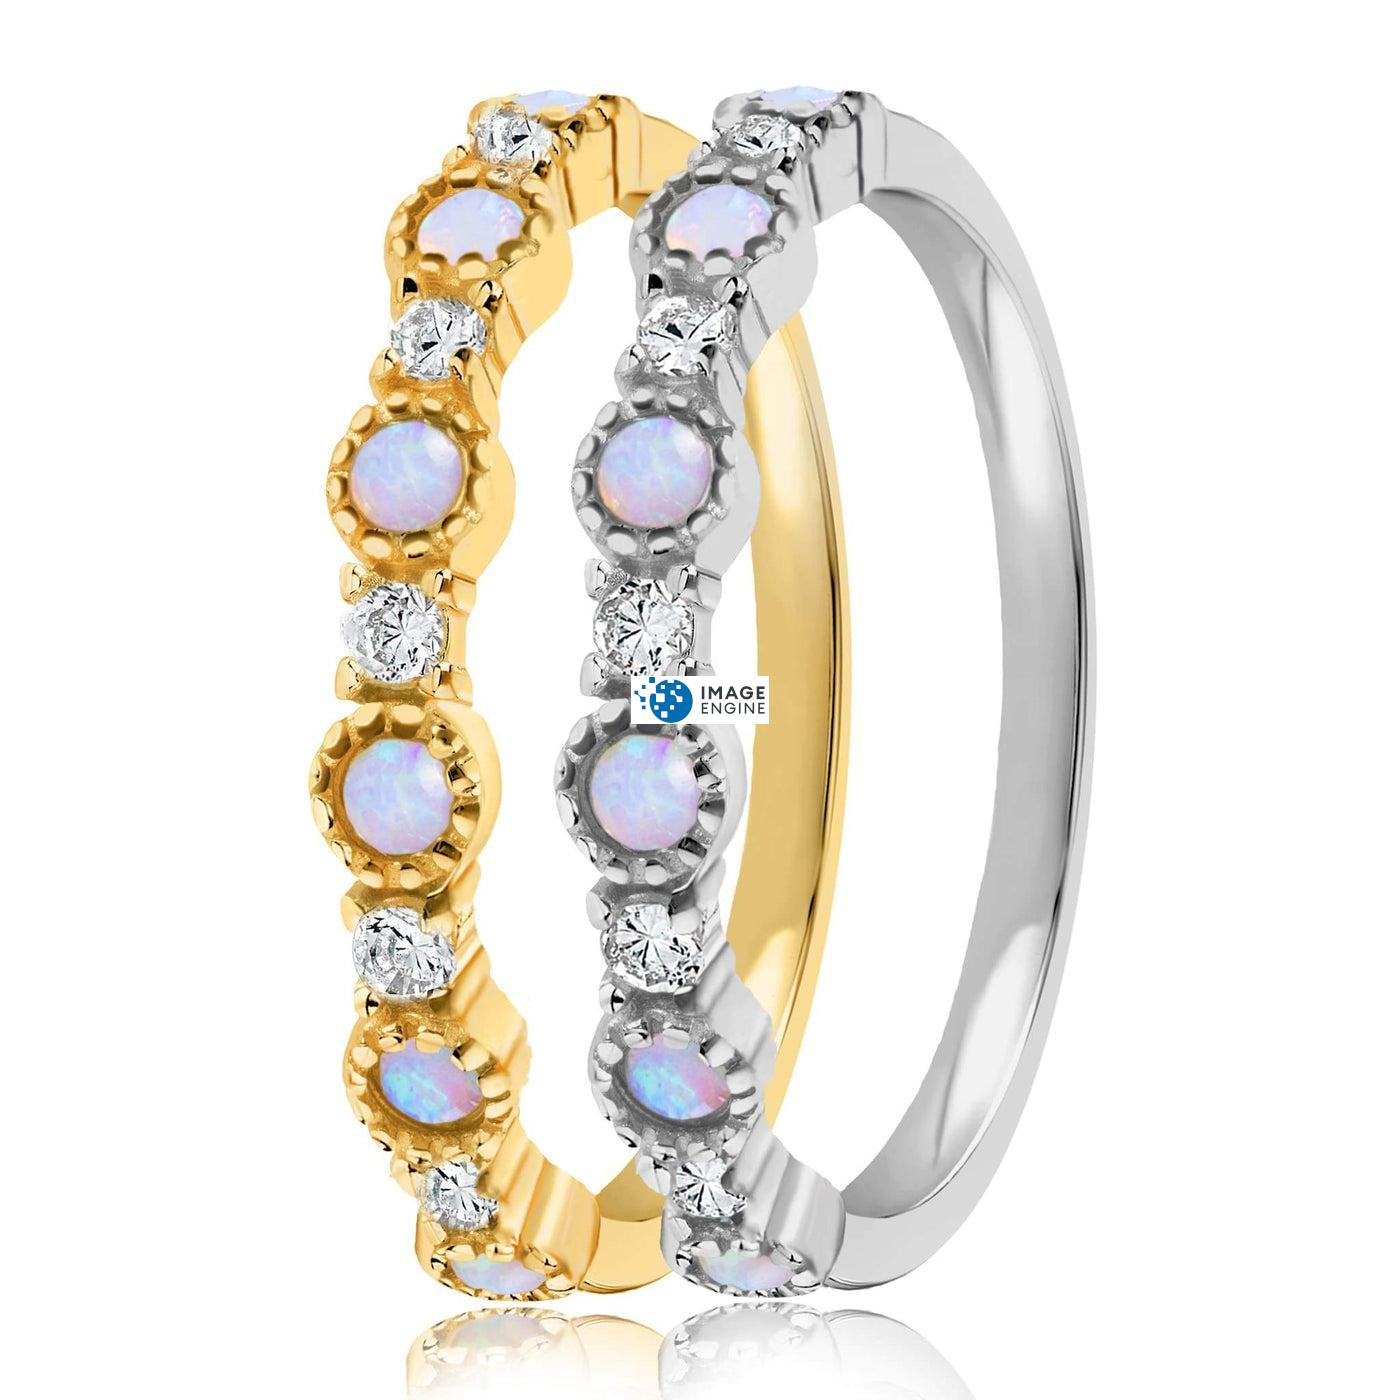 Debra Dots Opal Ring - Side by Side - 18K Yellow Gold and 925 Sterling Silver